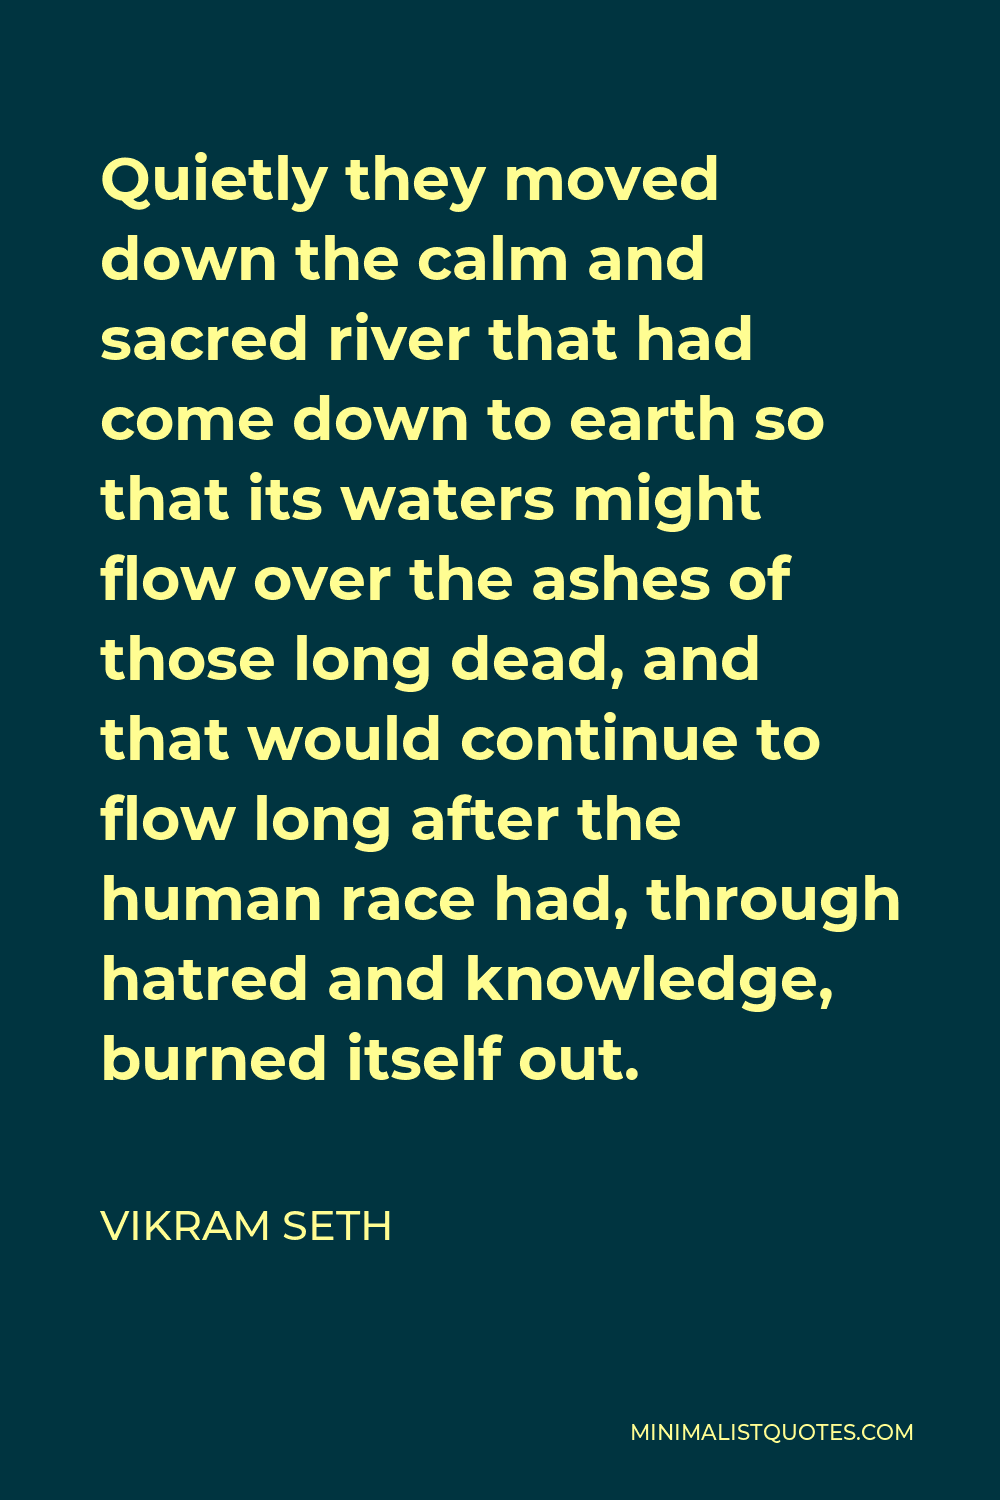 Vikram Seth Quote - Quietly they moved down the calm and sacred river that had come down to earth so that its waters might flow over the ashes of those long dead, and that would continue to flow long after the human race had, through hatred and knowledge, burned itself out.